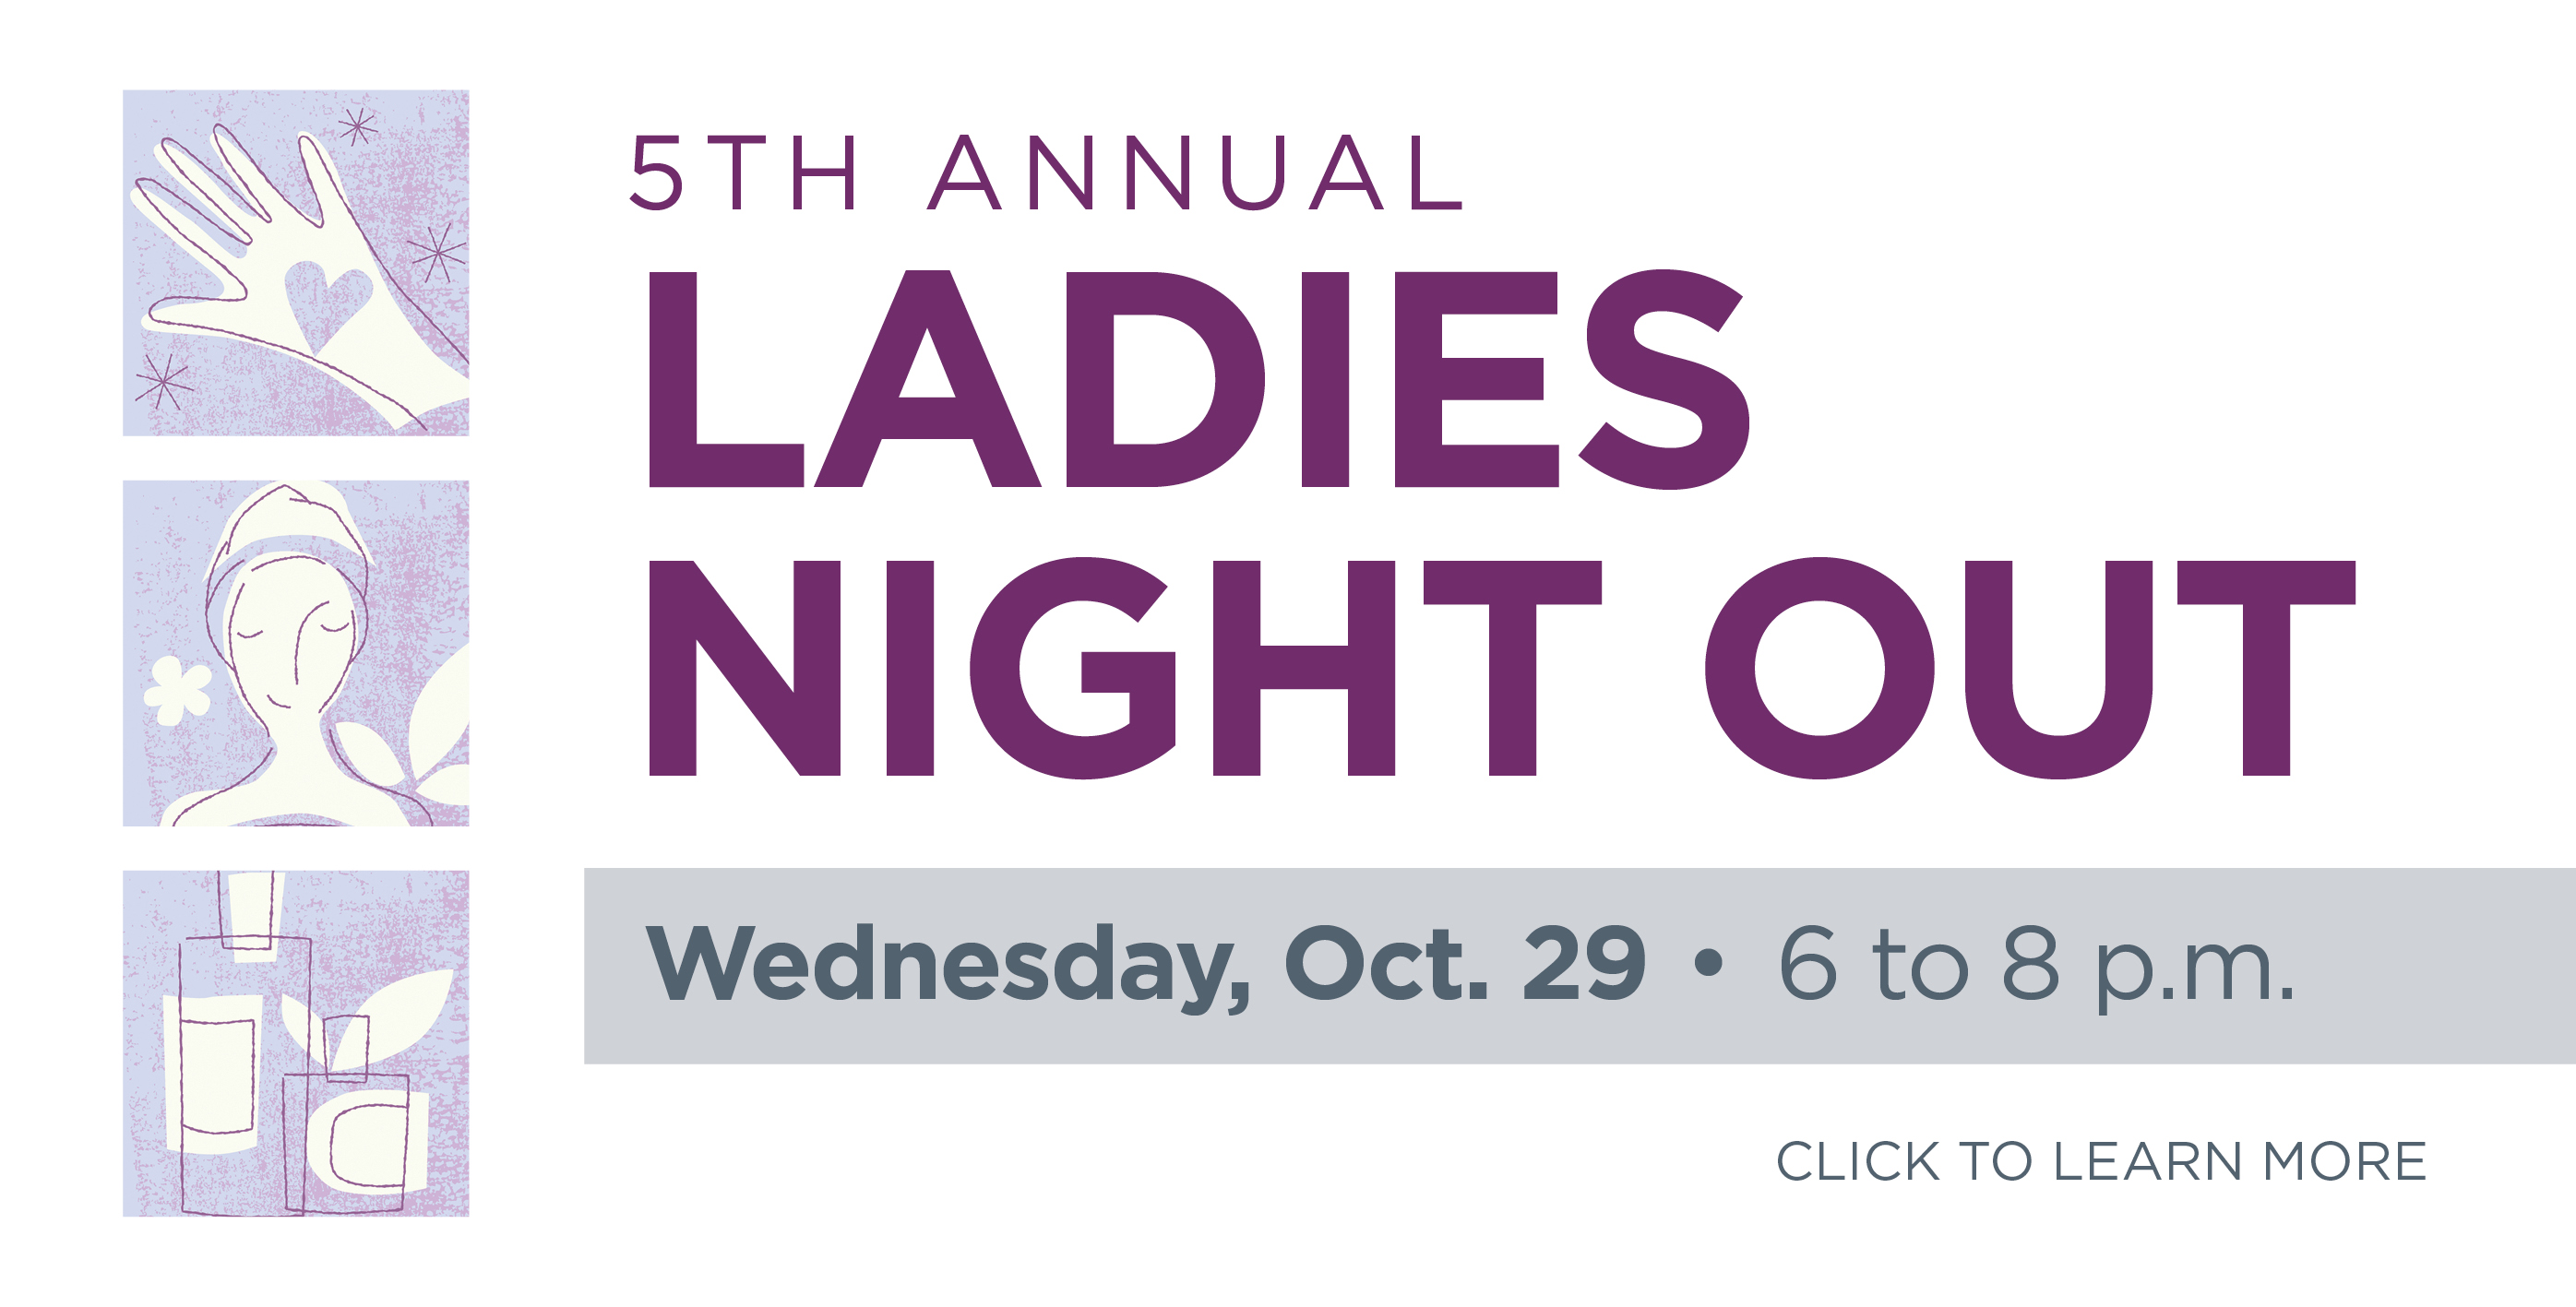 Kane LadiesNight 2014 HomePage 670x340